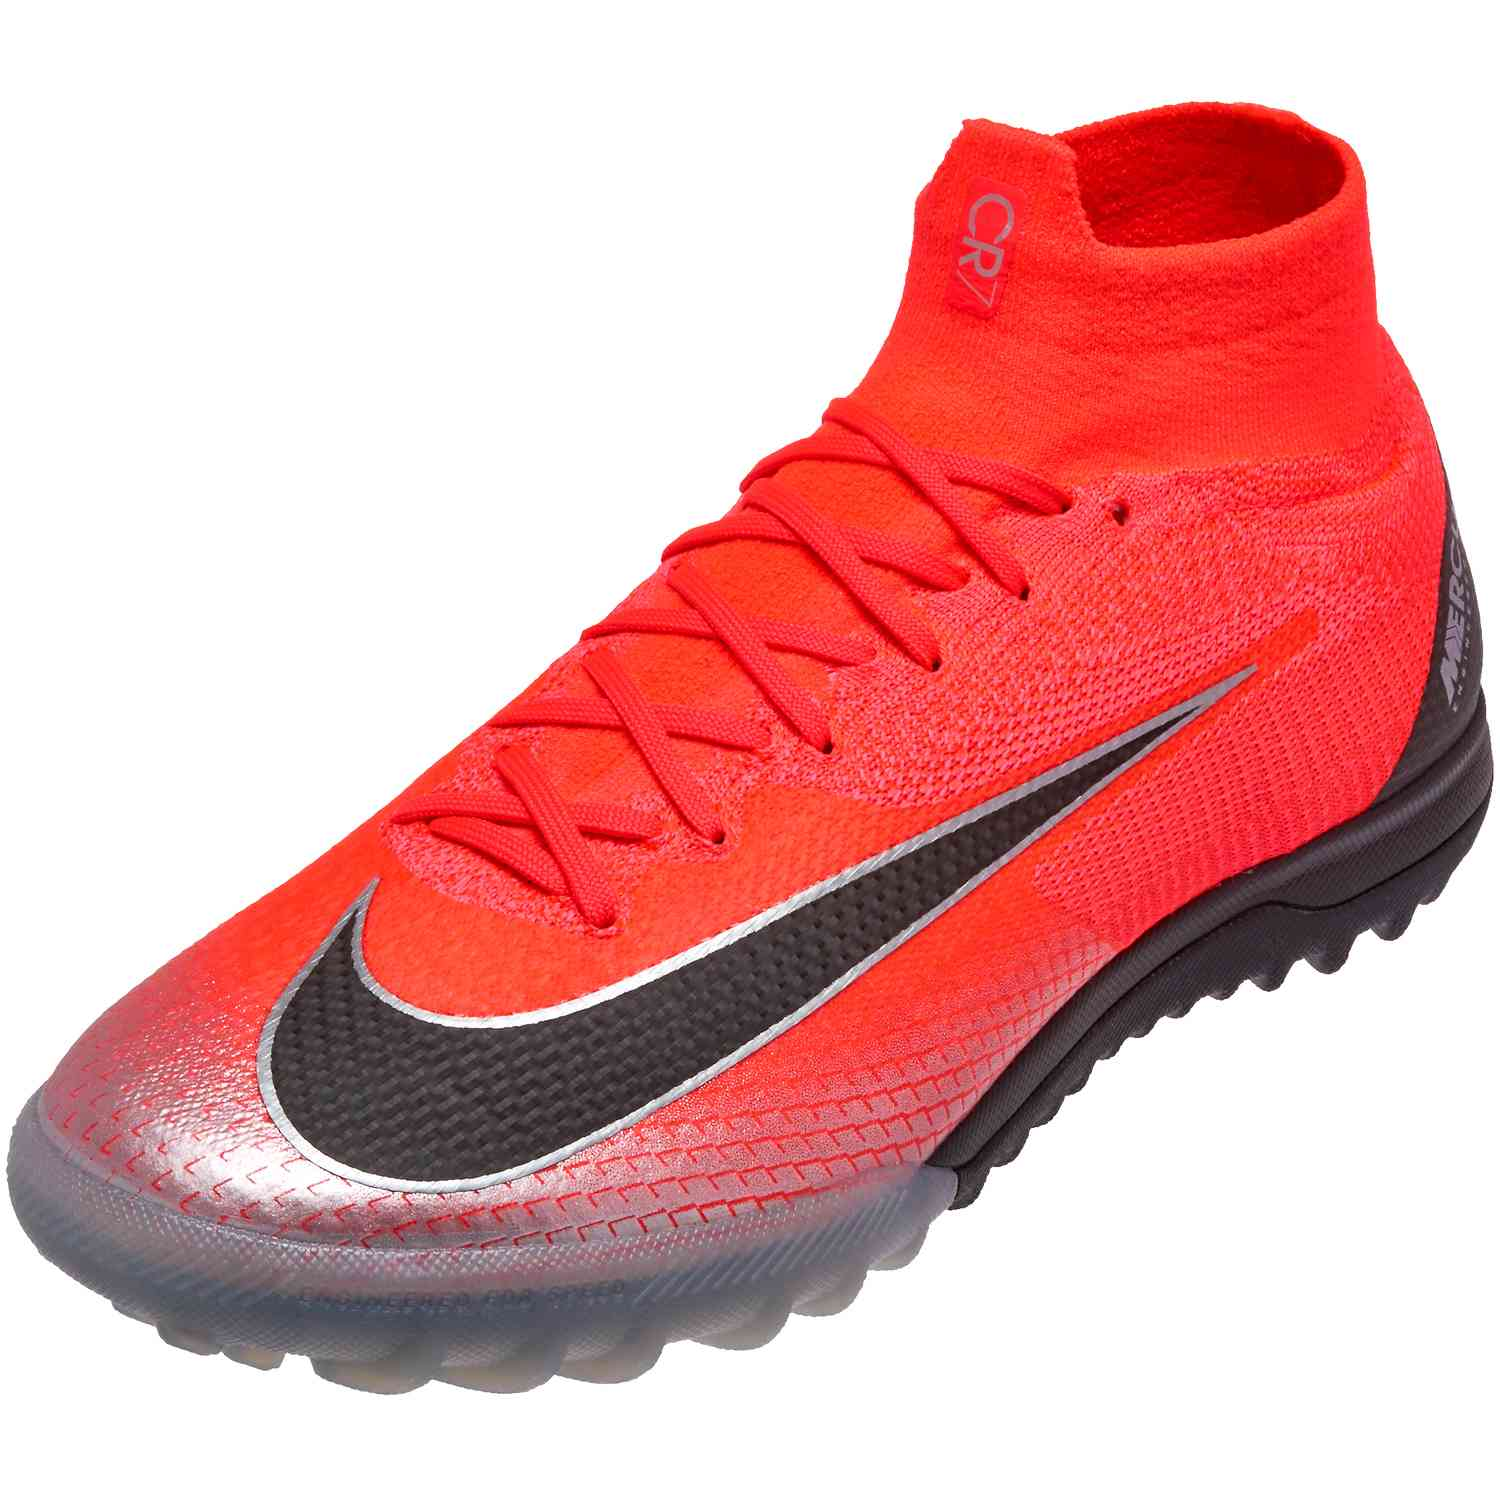 Nike CR7 SuperflyX Elite TF - Chapter 7 - SoccerPro.com cf291a4ac06b9